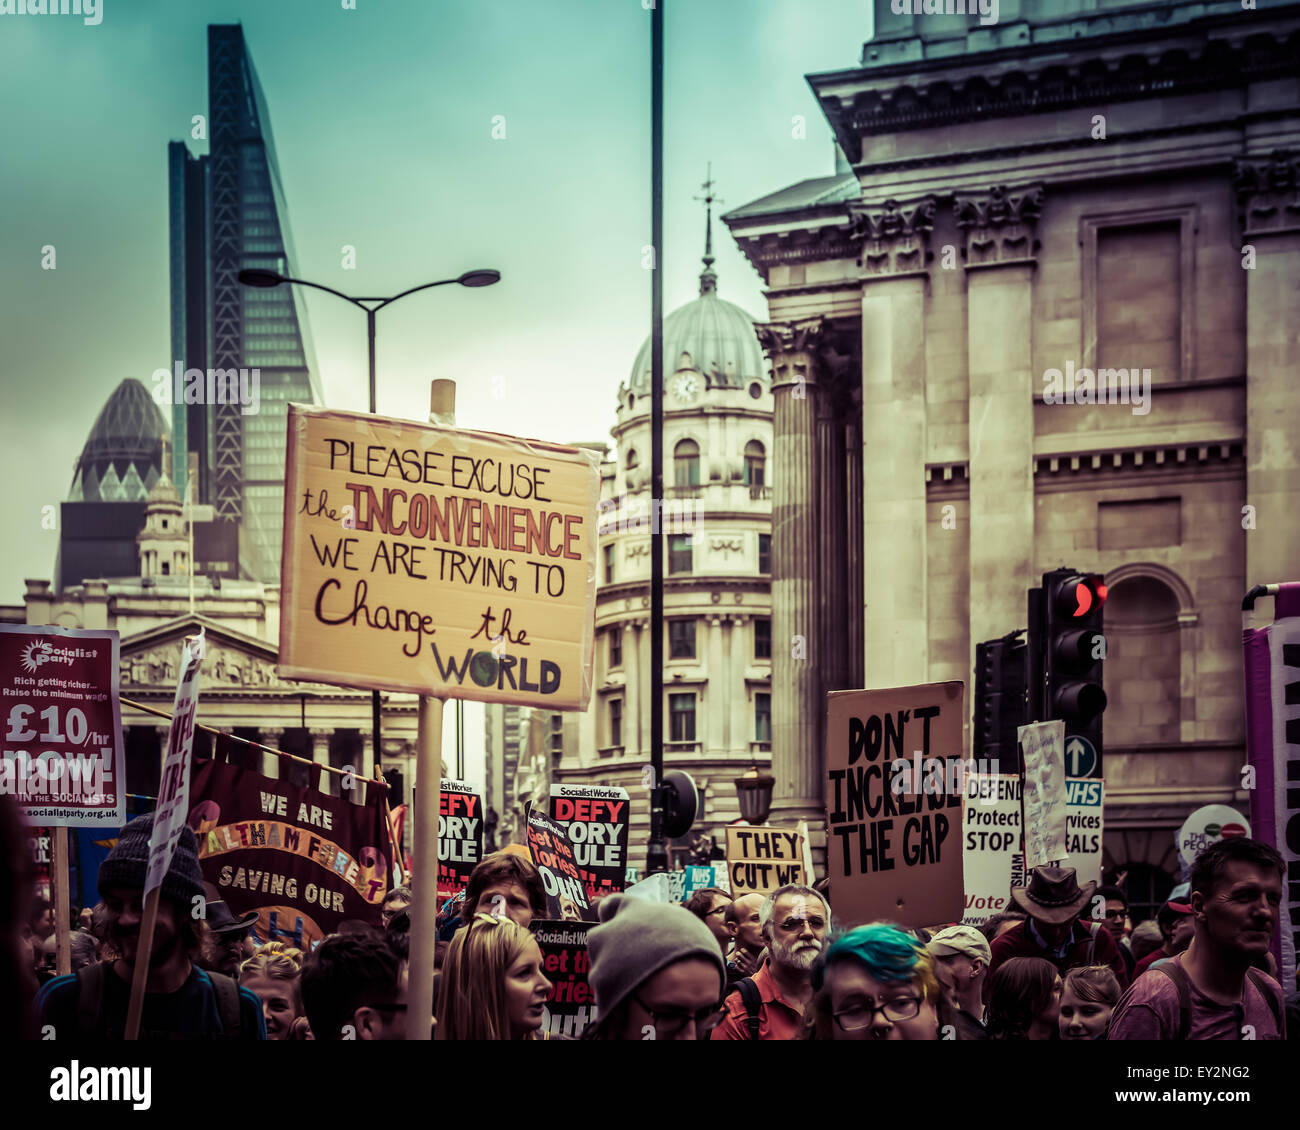 Anti-austerity march in the City of London on 20th June 2015 with landmark city buildings in the background - Stock Image